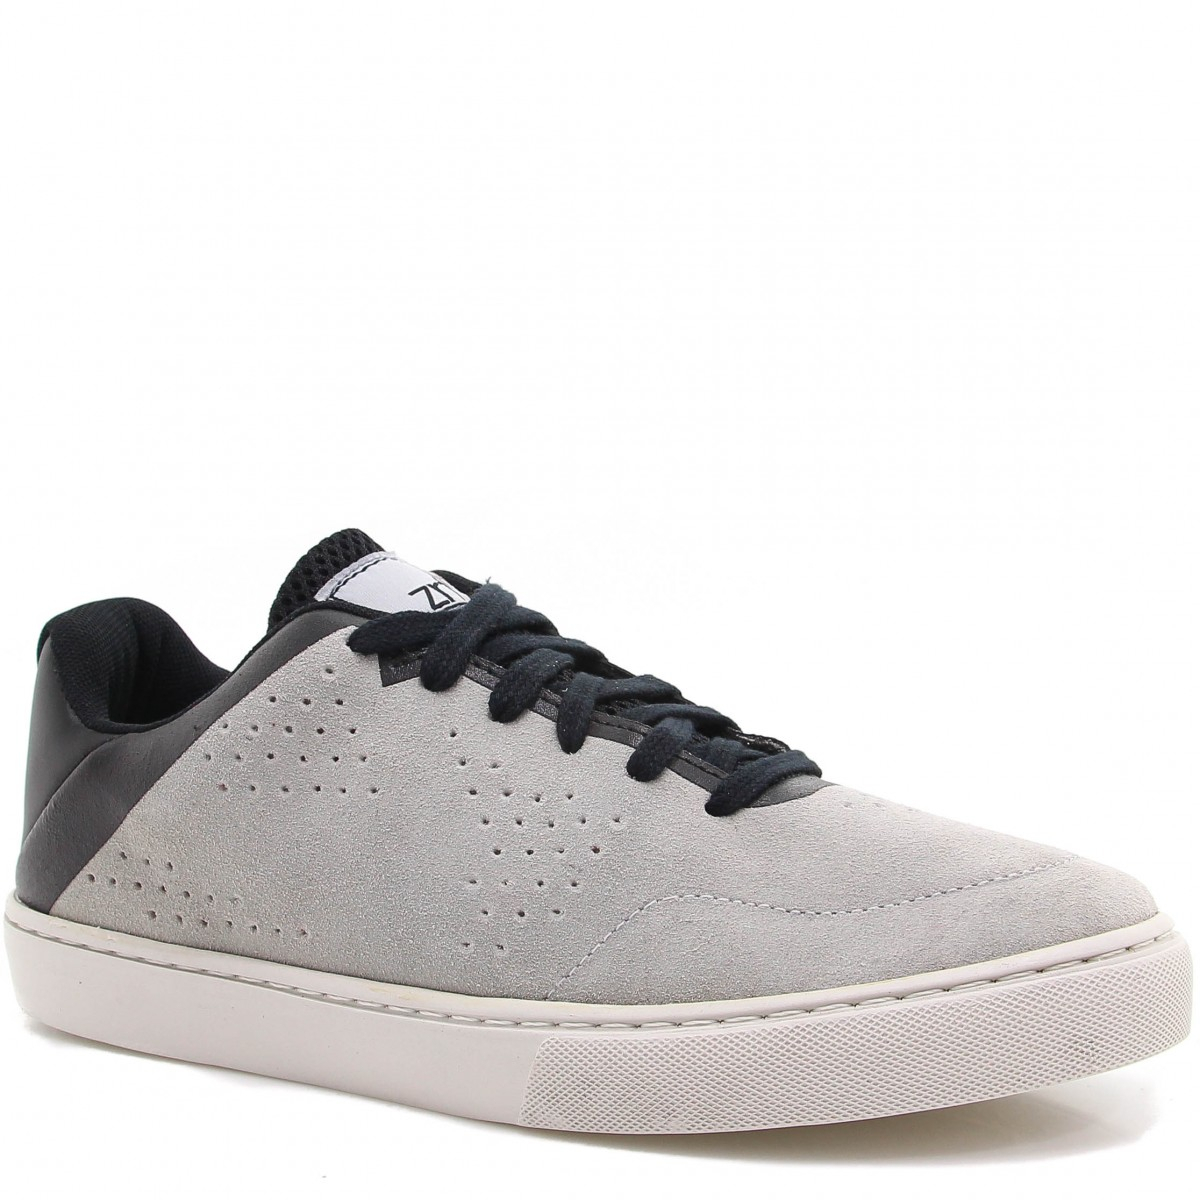 Tênis Casual Zariff Shoes Skate Cinza